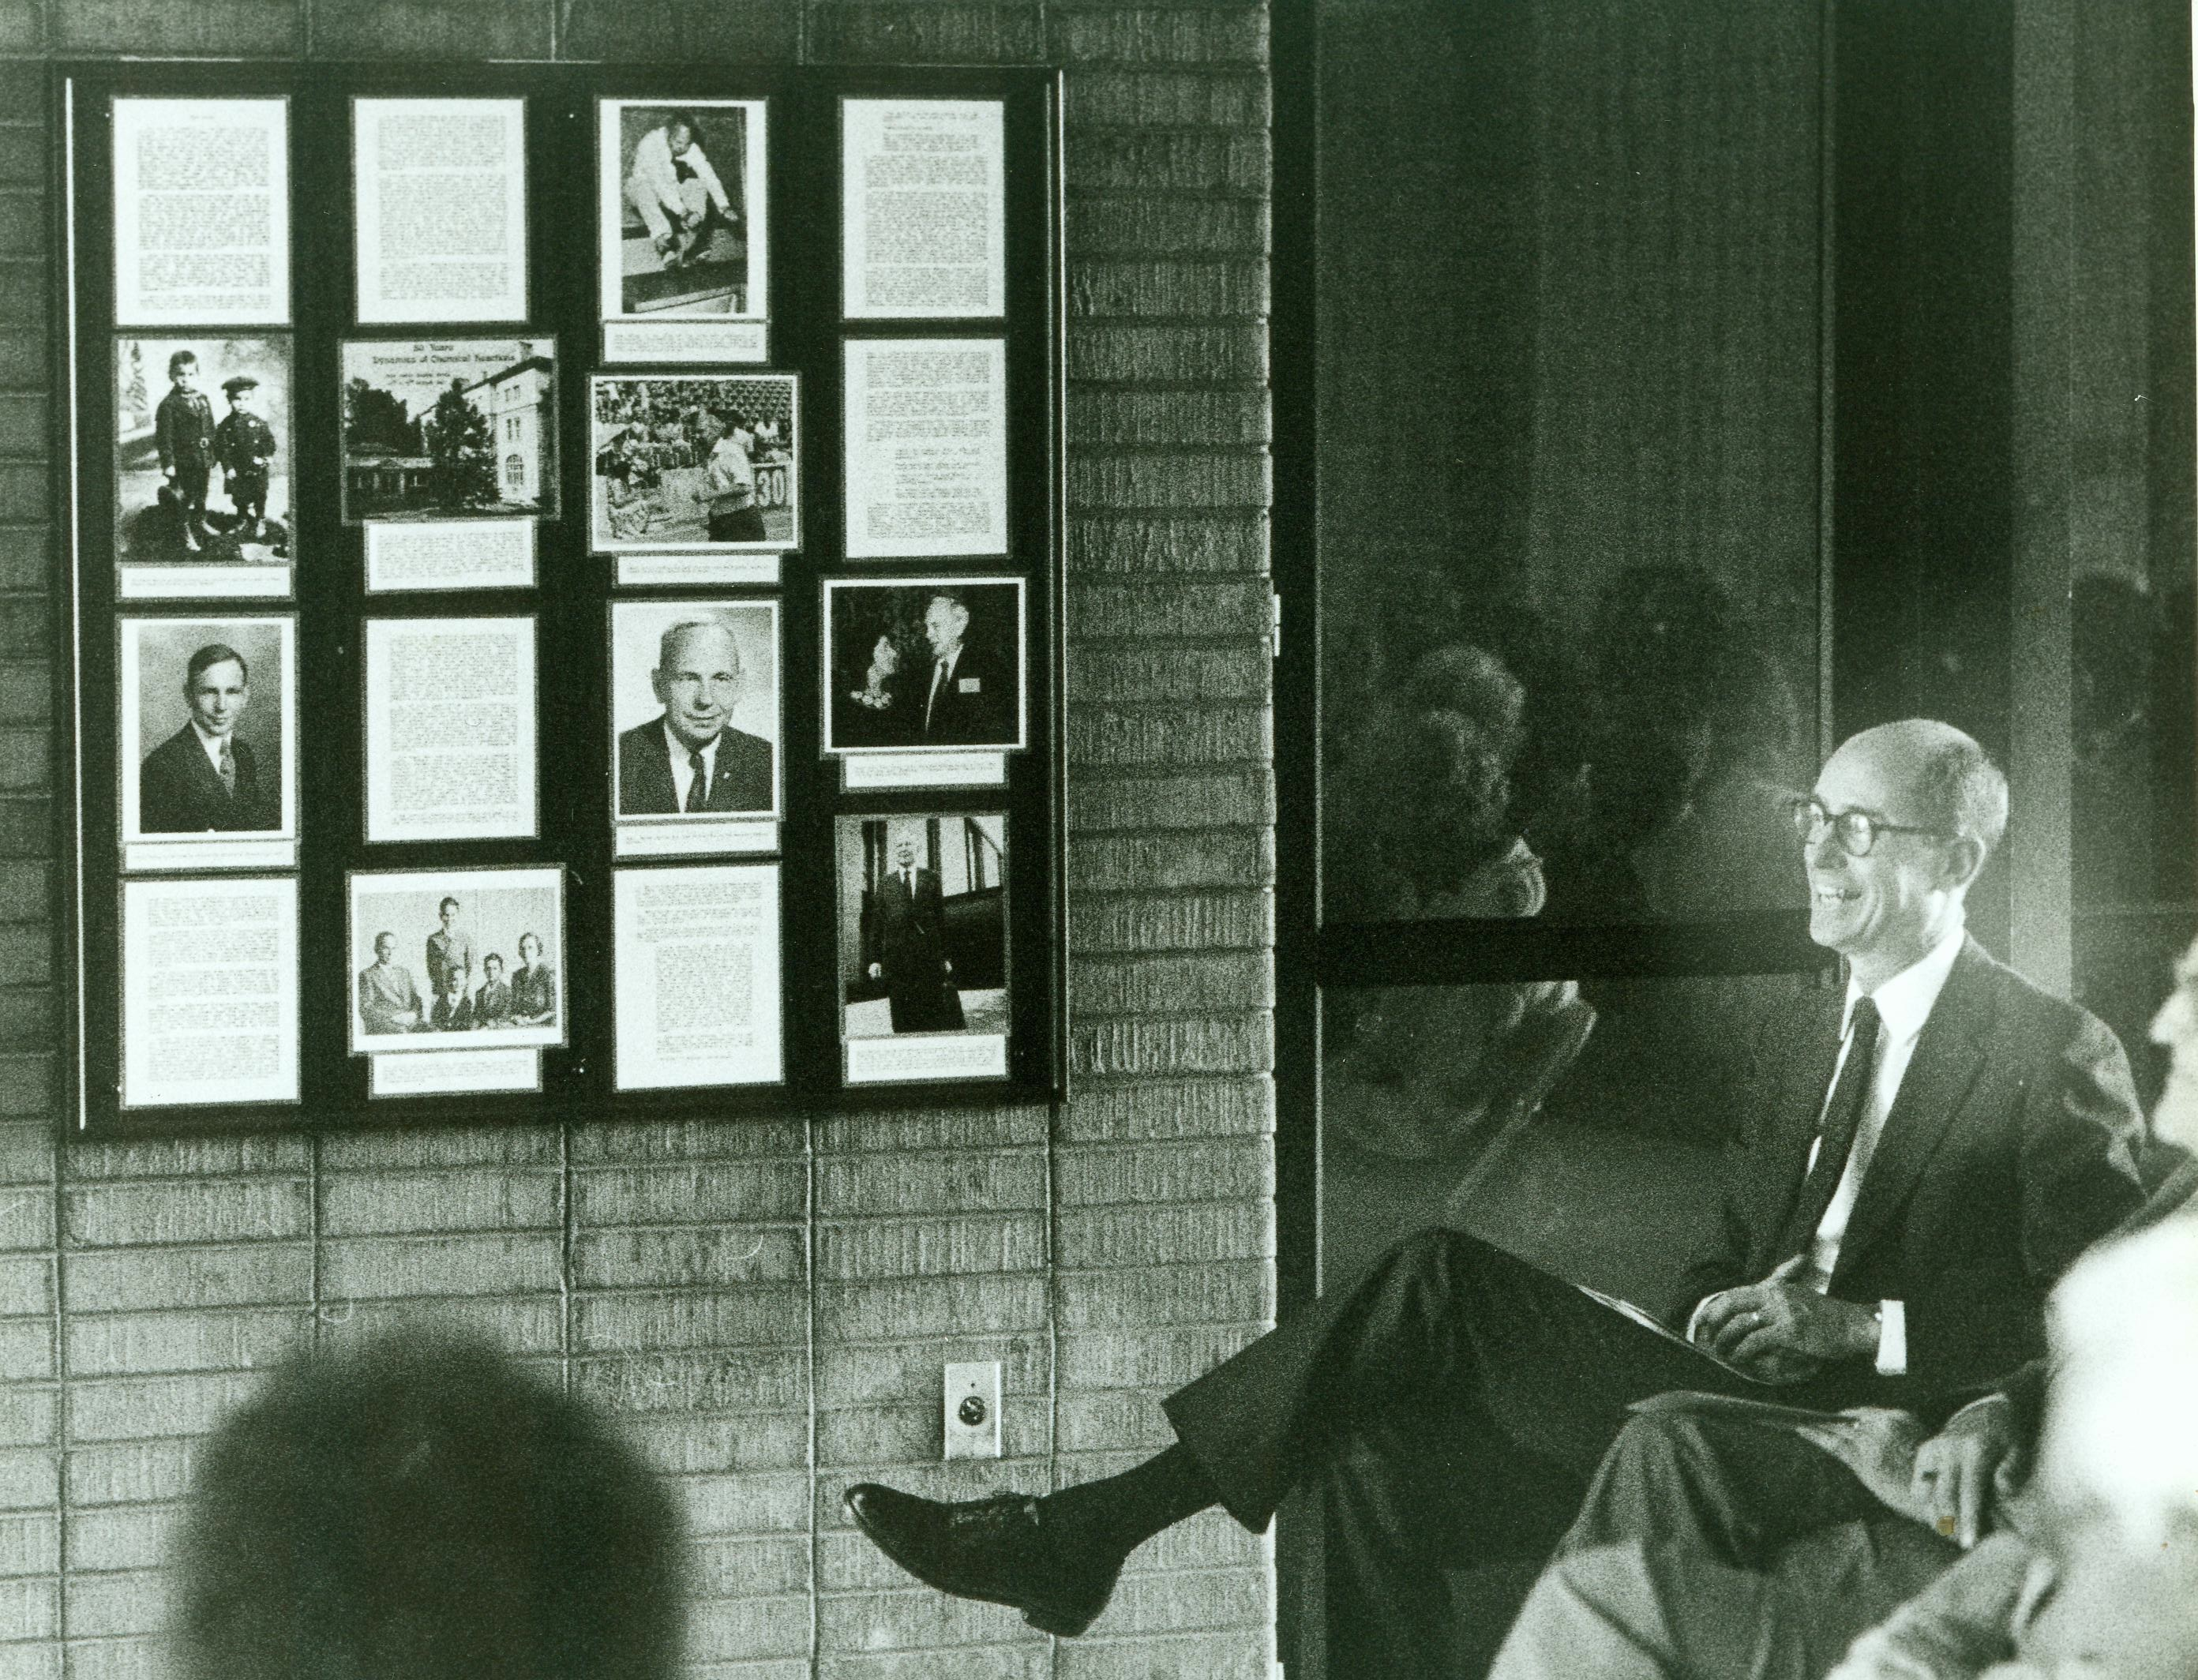 Then-Bishop Henry B. Eyring attends the dedication of an exhibit memorializing his late father, Dr. Henry Eyring, at the University of Utah.